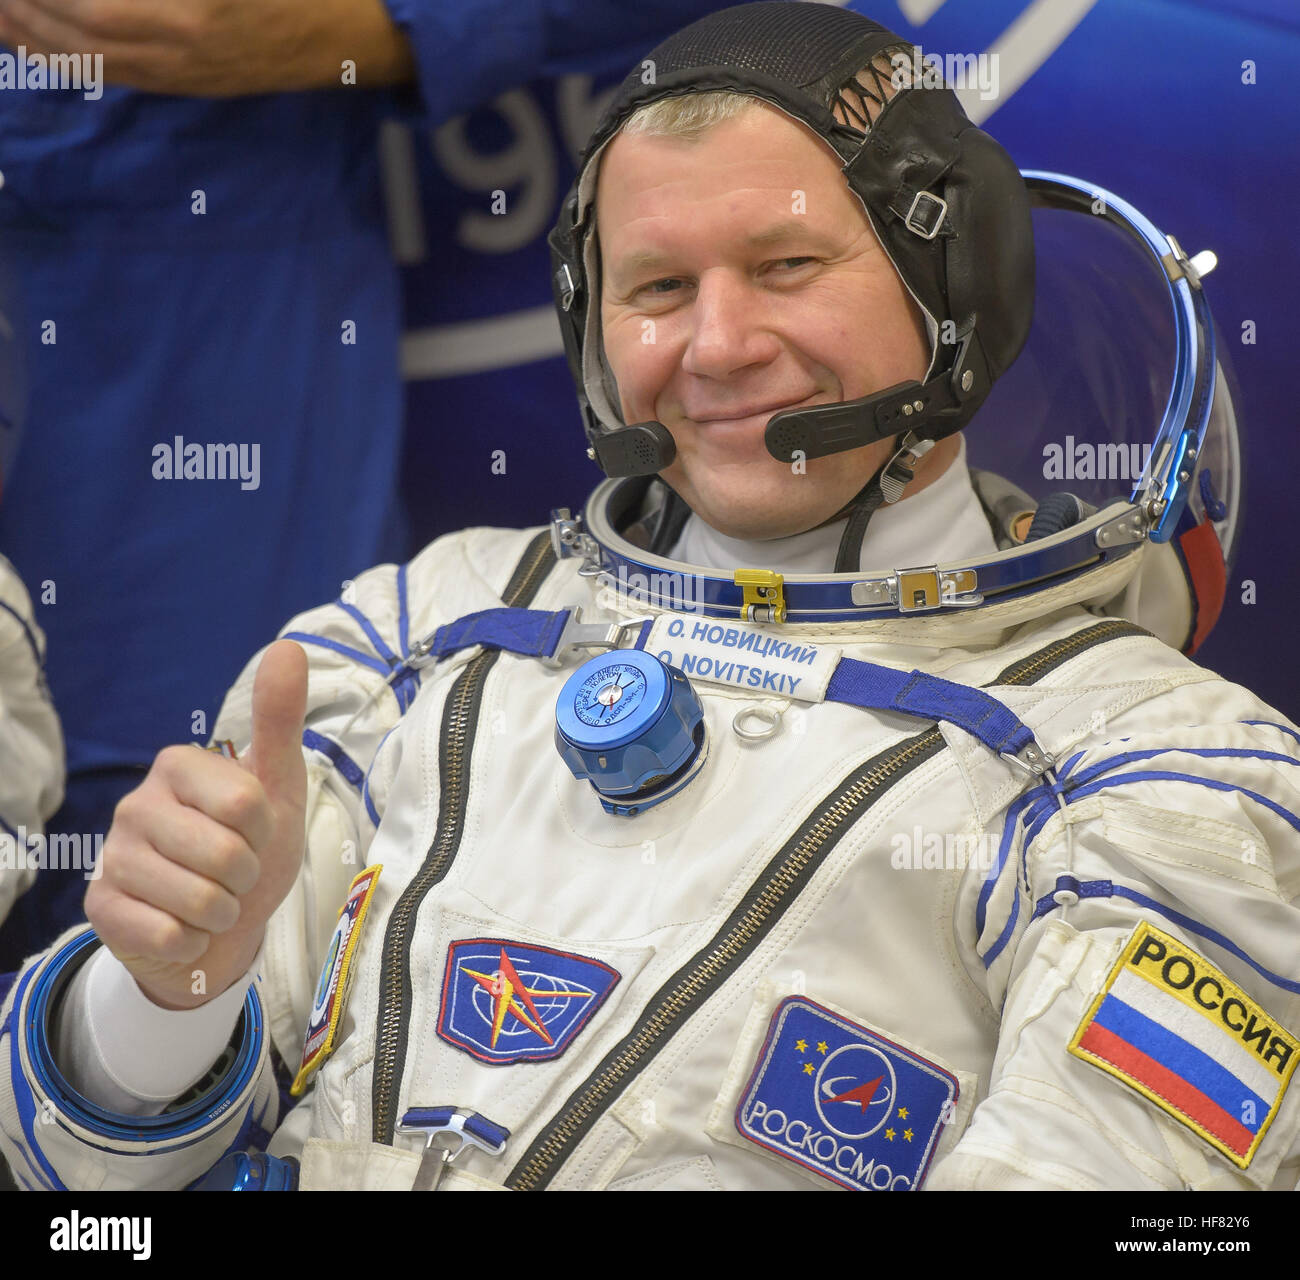 Expedition 50 Russian cosmonaut Oleg Novitskiy of Roscosmos is seen after donning his Russian sokol suit a few hours - Stock Image